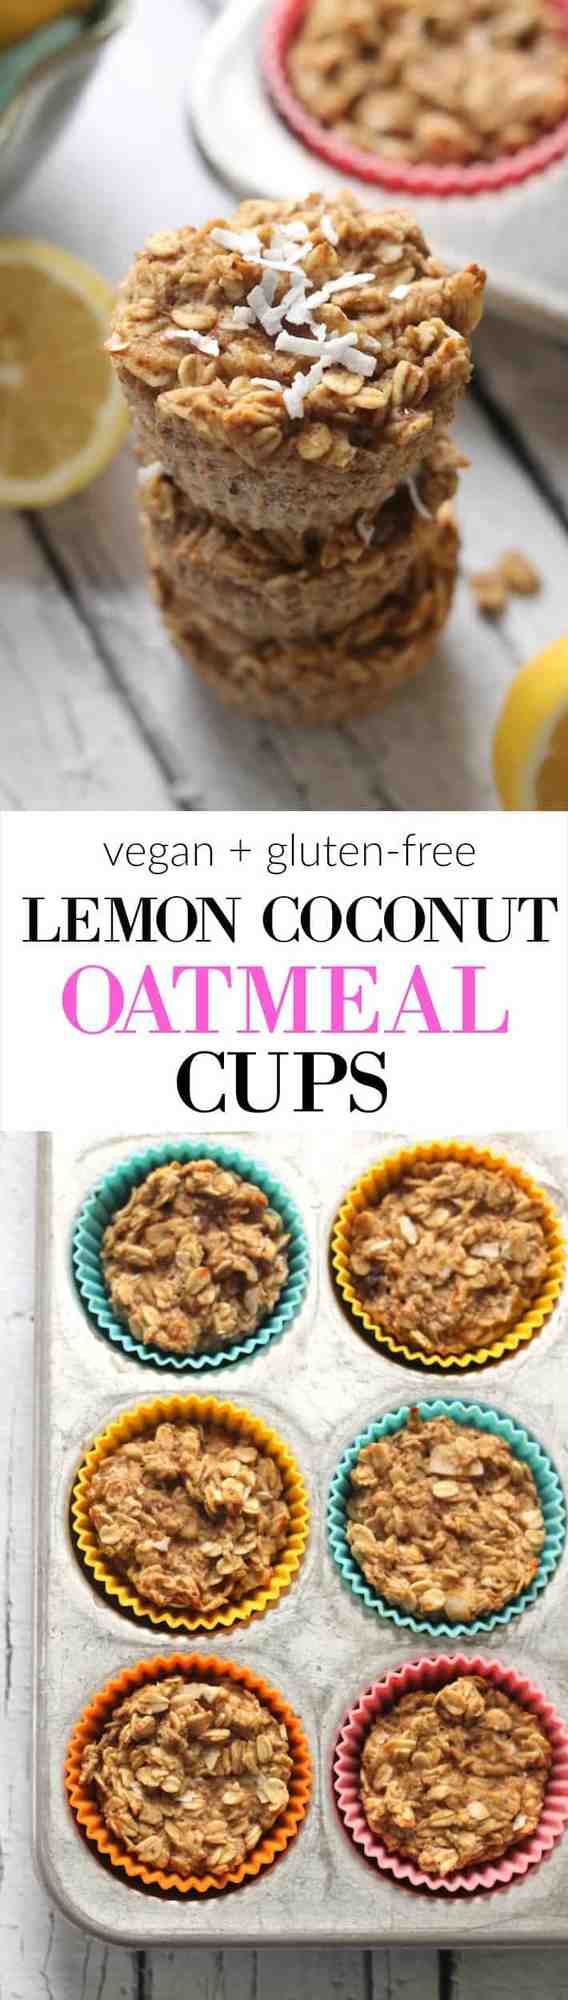 Moist and delicious Lemon Coconut Baked Oatmeal Cups with no added sugar make the perfect healthy breakfast on the go! Vegan and gluten-free.